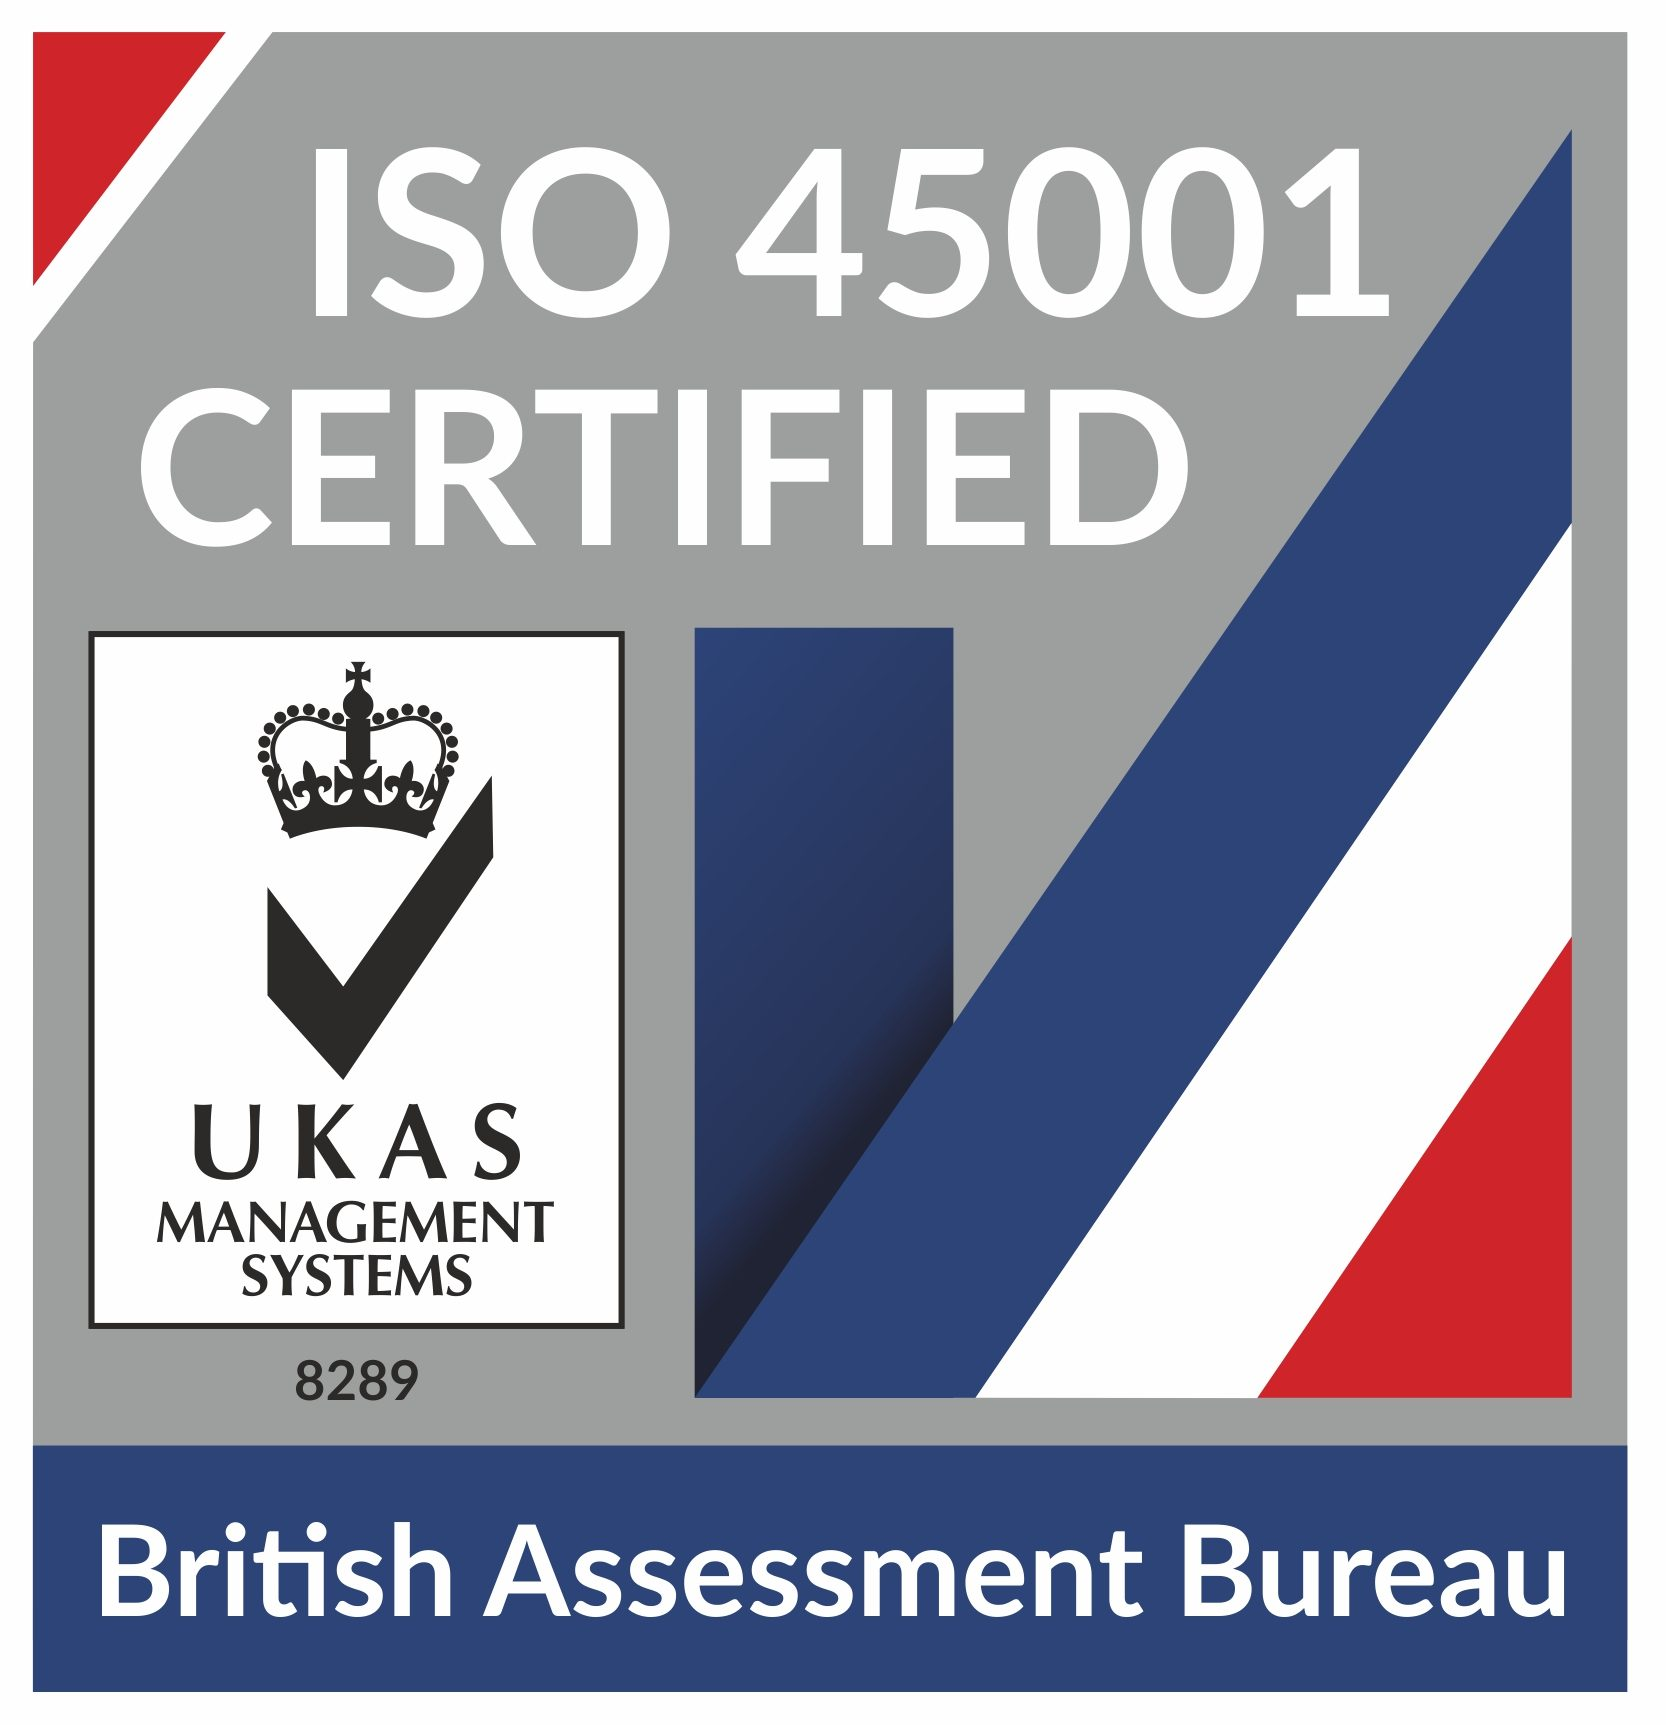 We've added ISO 45001:2018 Certification to our list of Corporate Accreditations